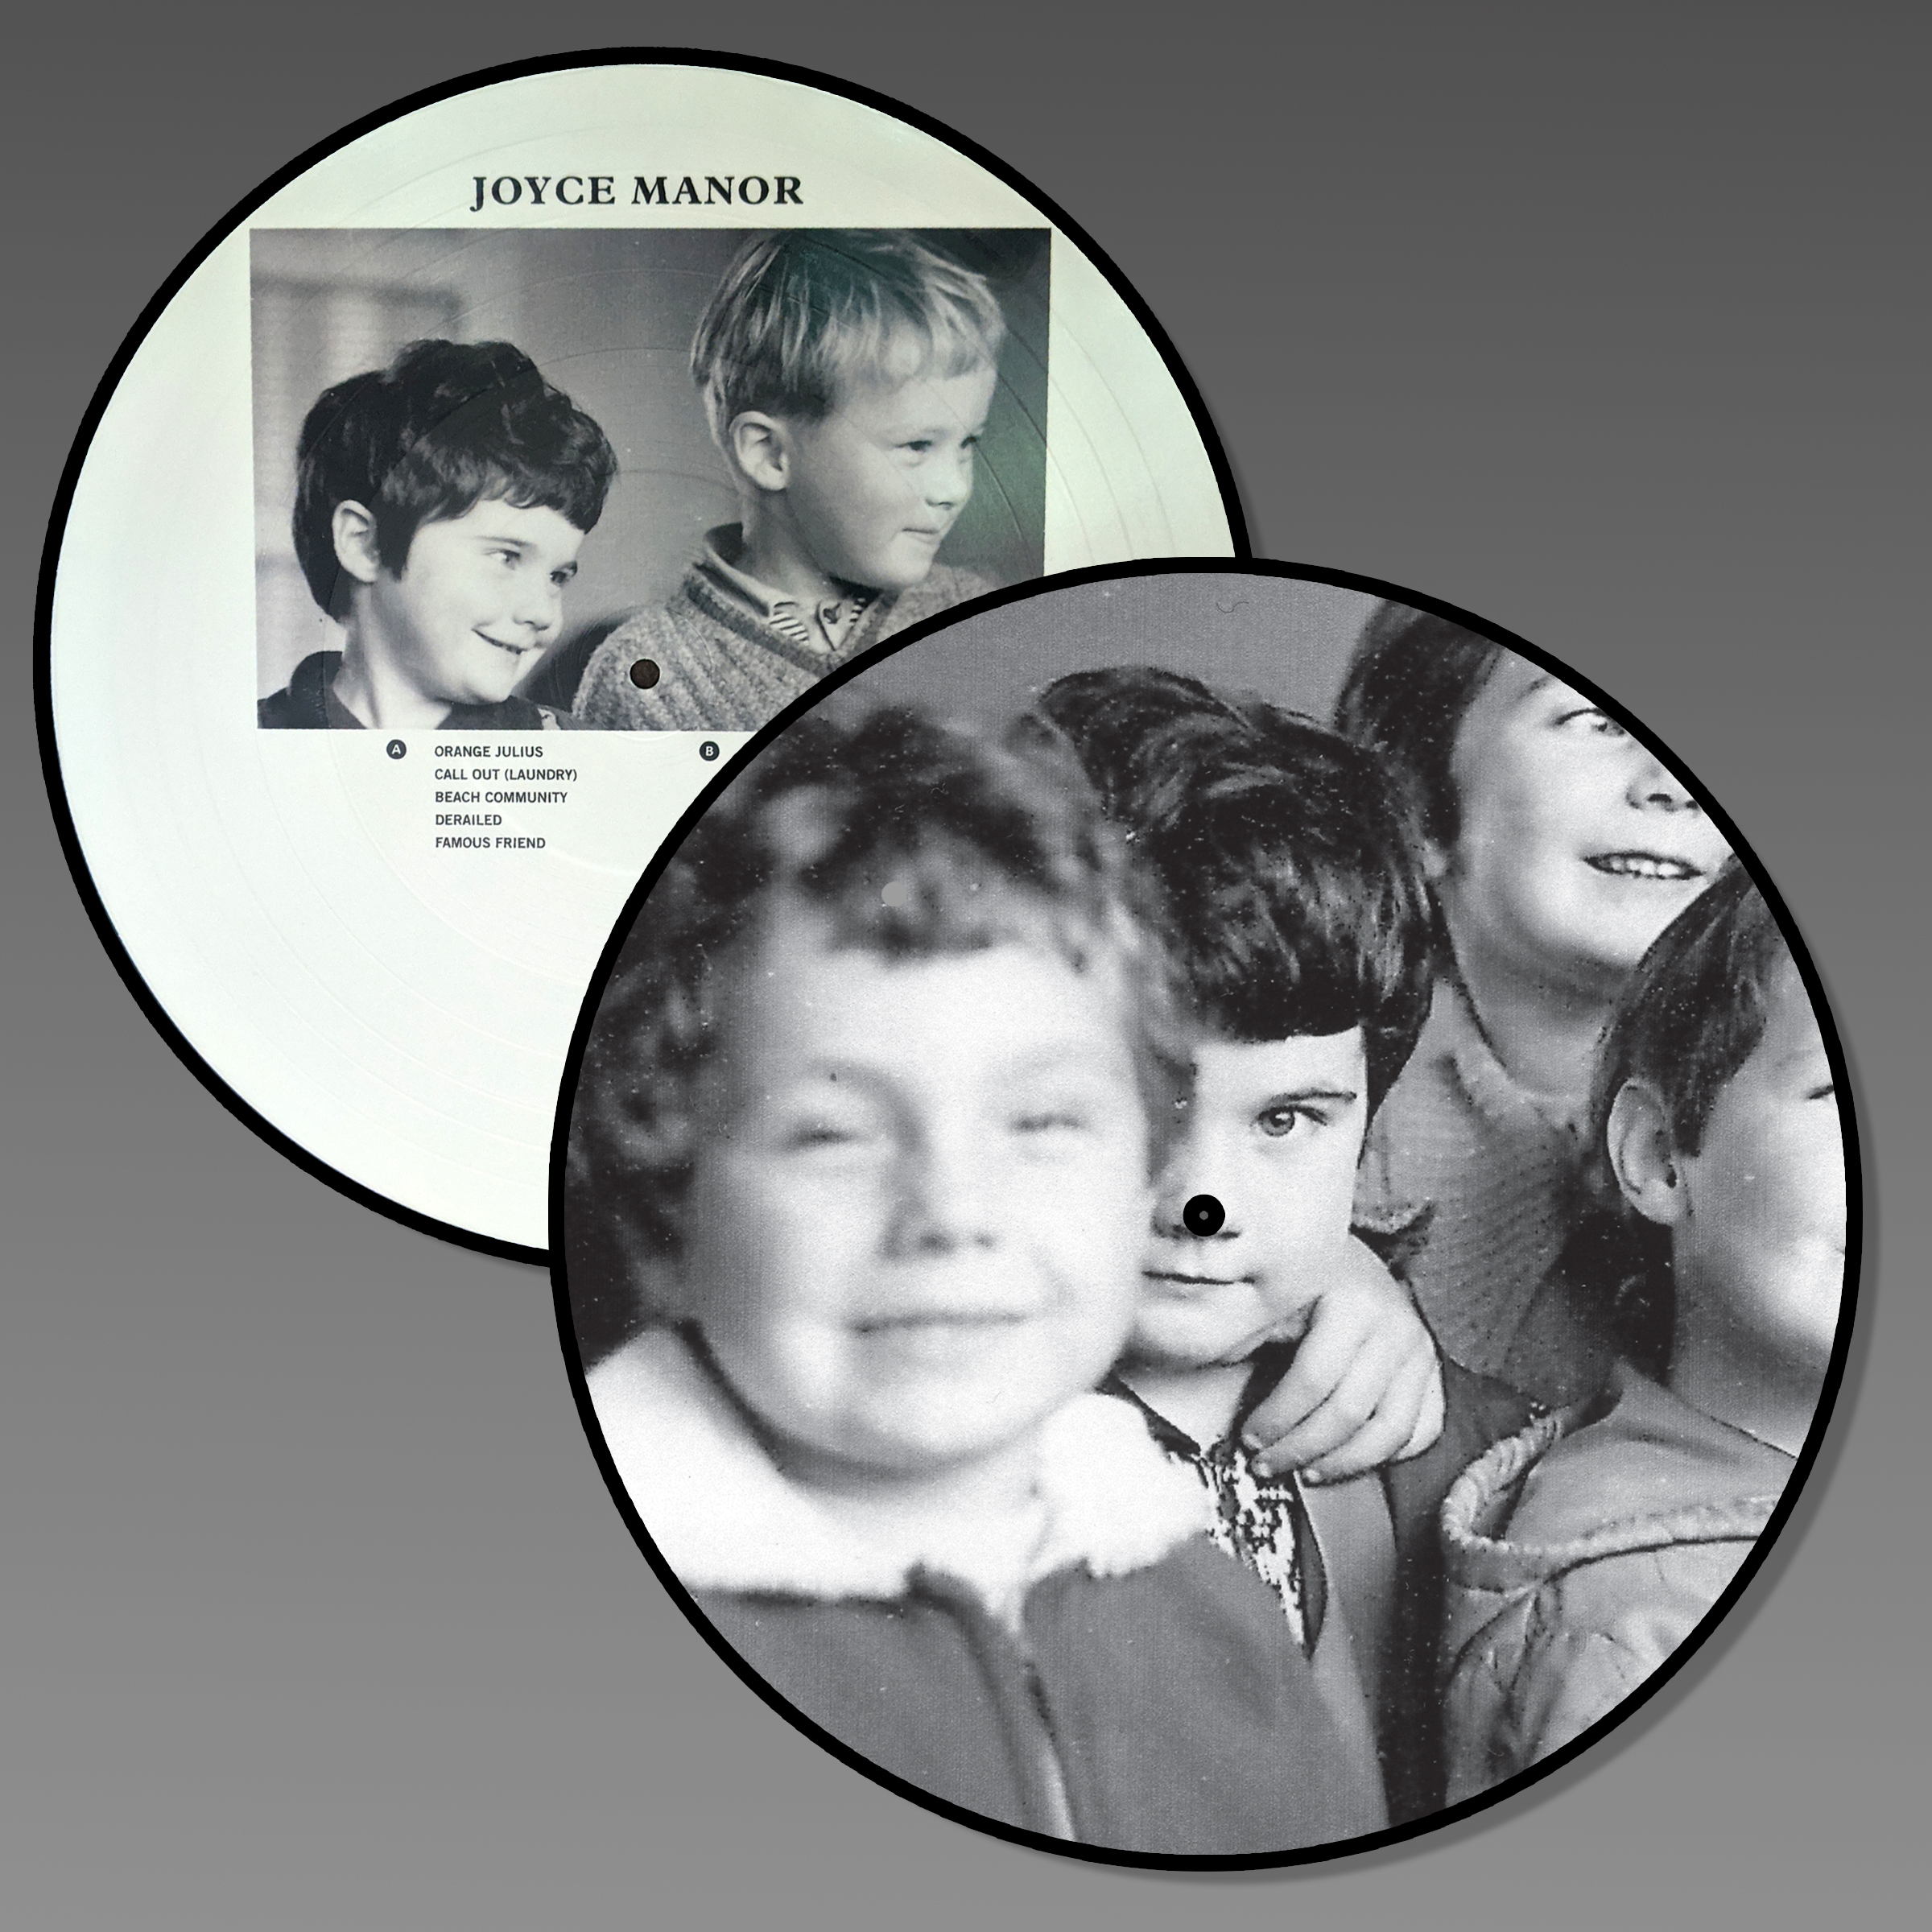 JOYCE MANOR 10 YEAR ANNIVERSARY PICTURE DISC